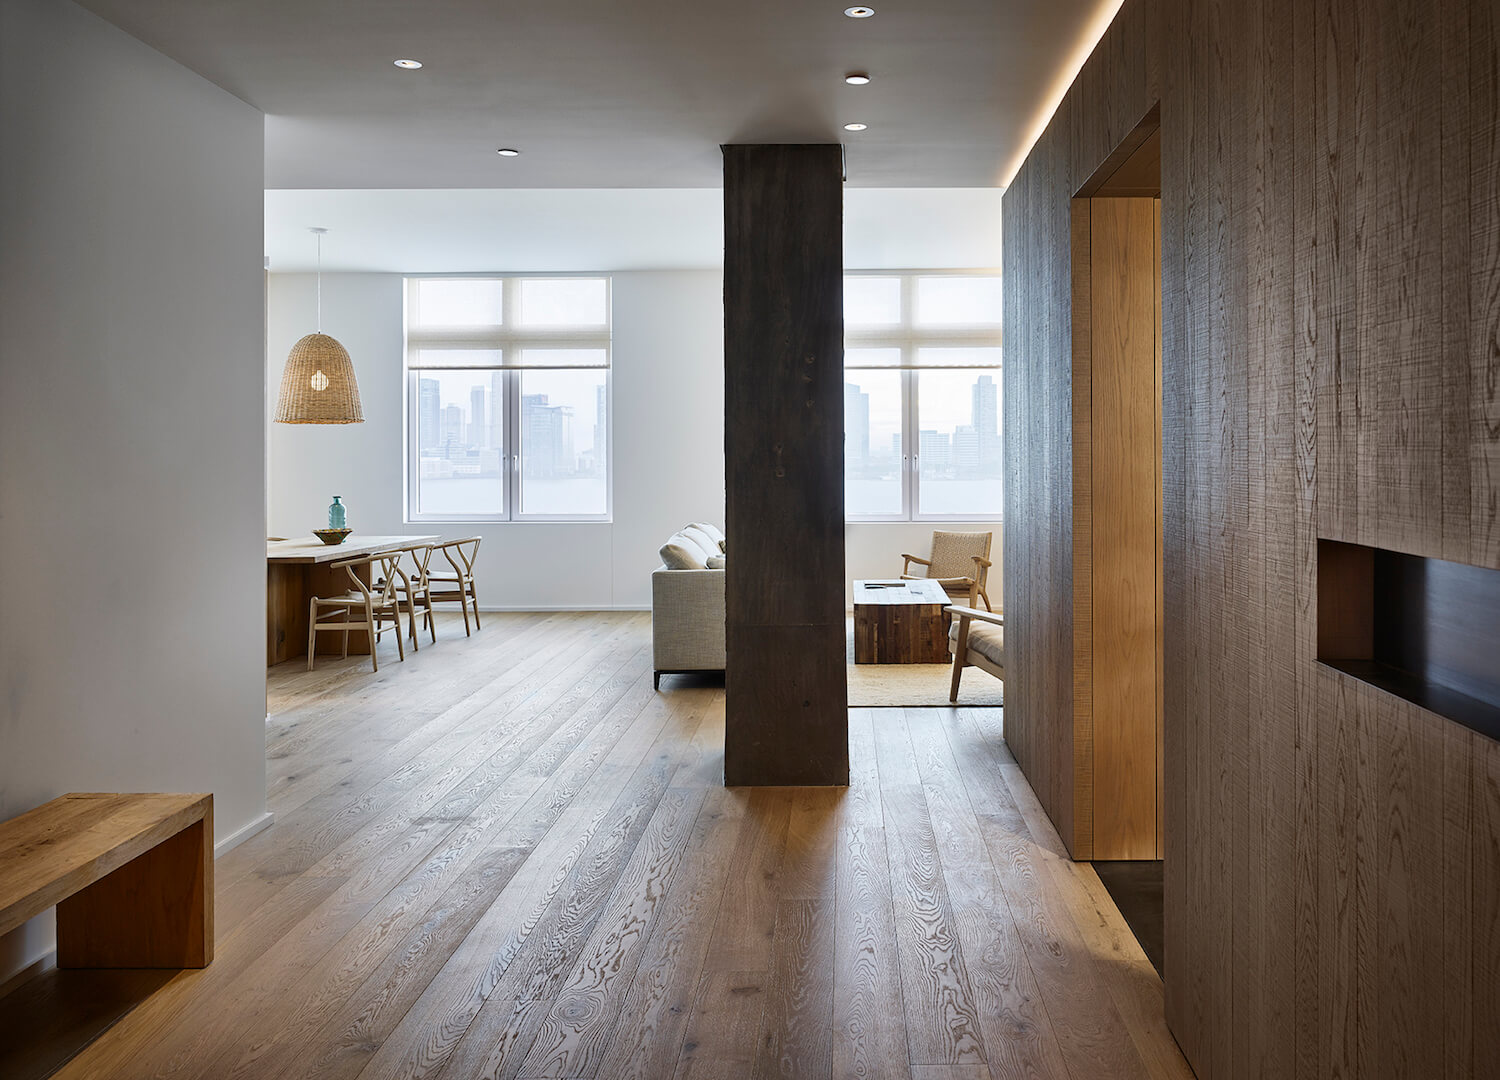 est living global interiors river loft robert young architects RRA 12 LAIGHT F.OUDEMAN 2015 ¬ 01